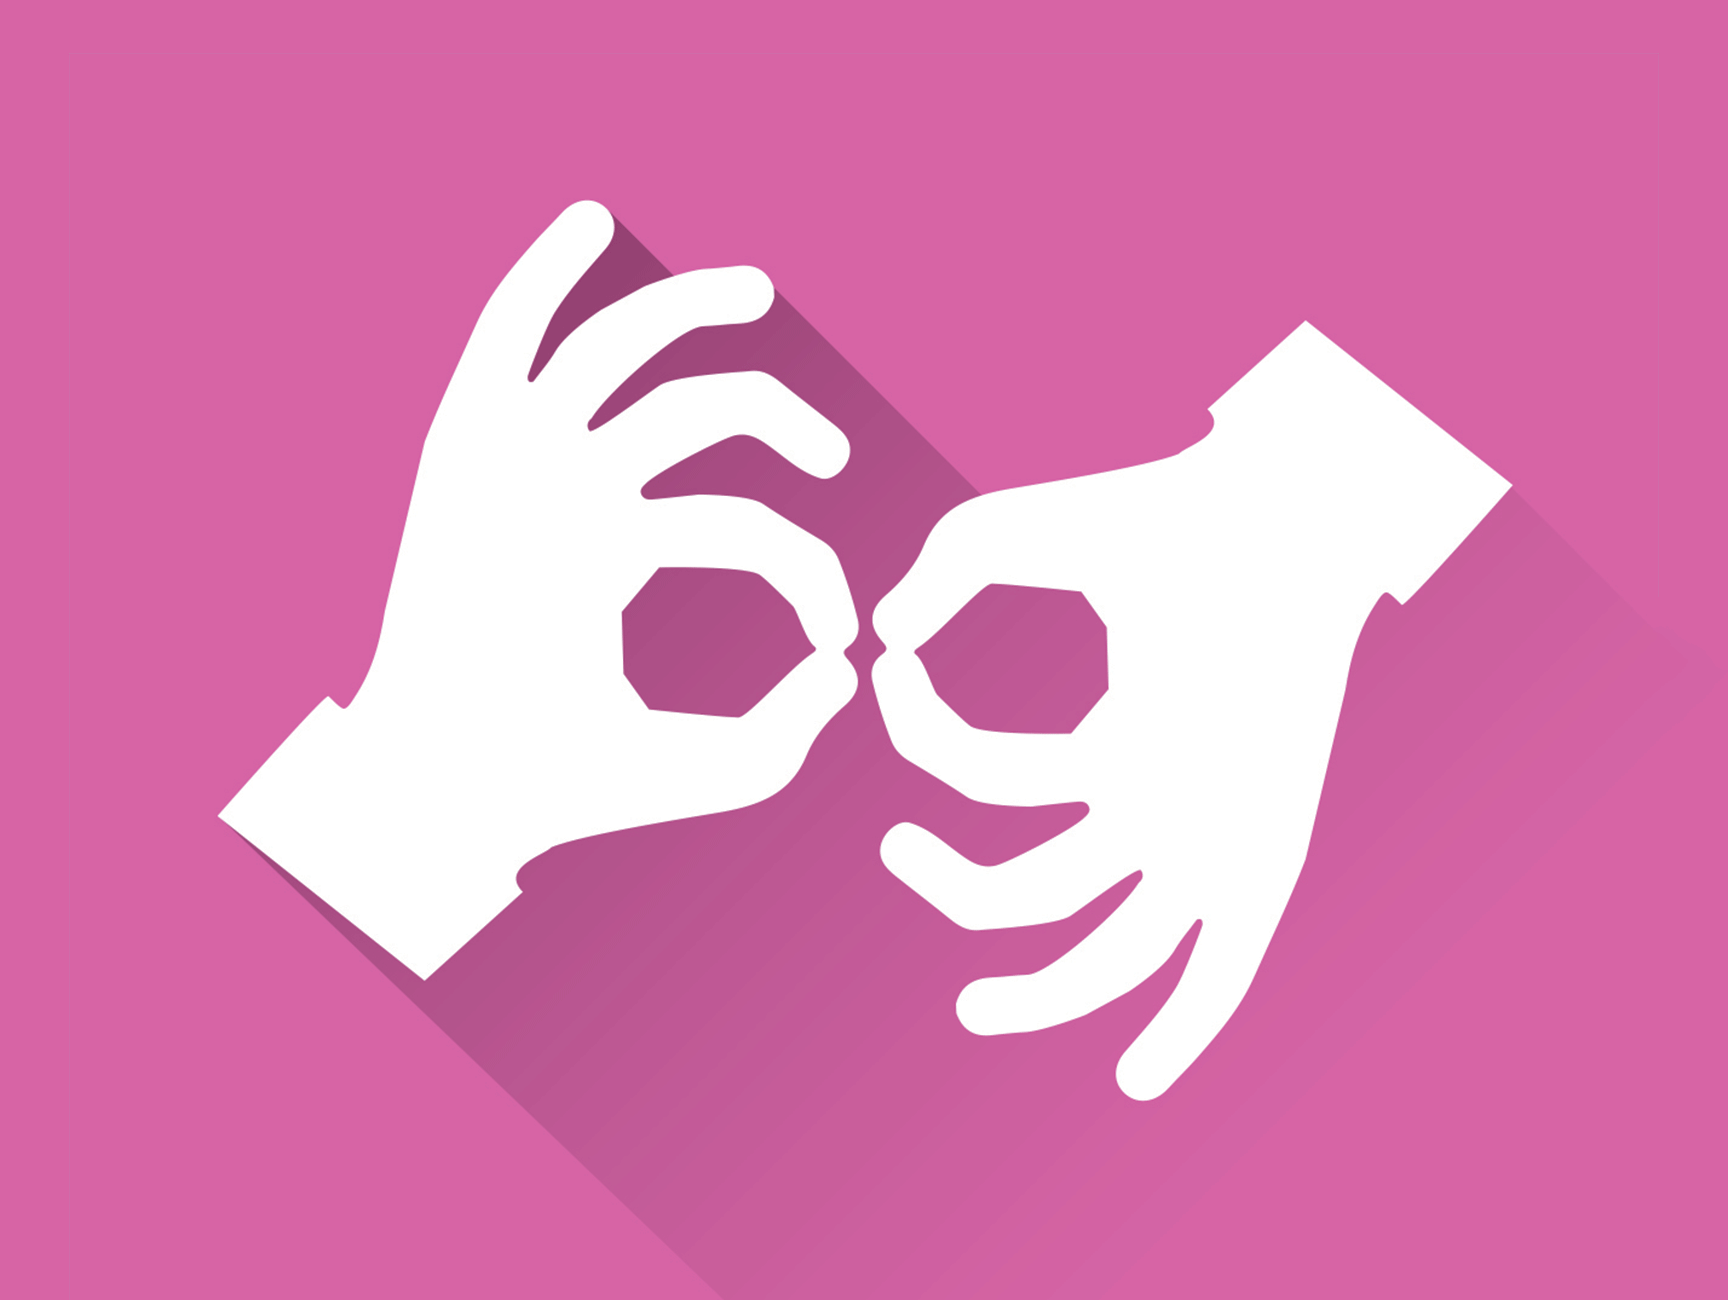 Illustration of two hands performing sign language